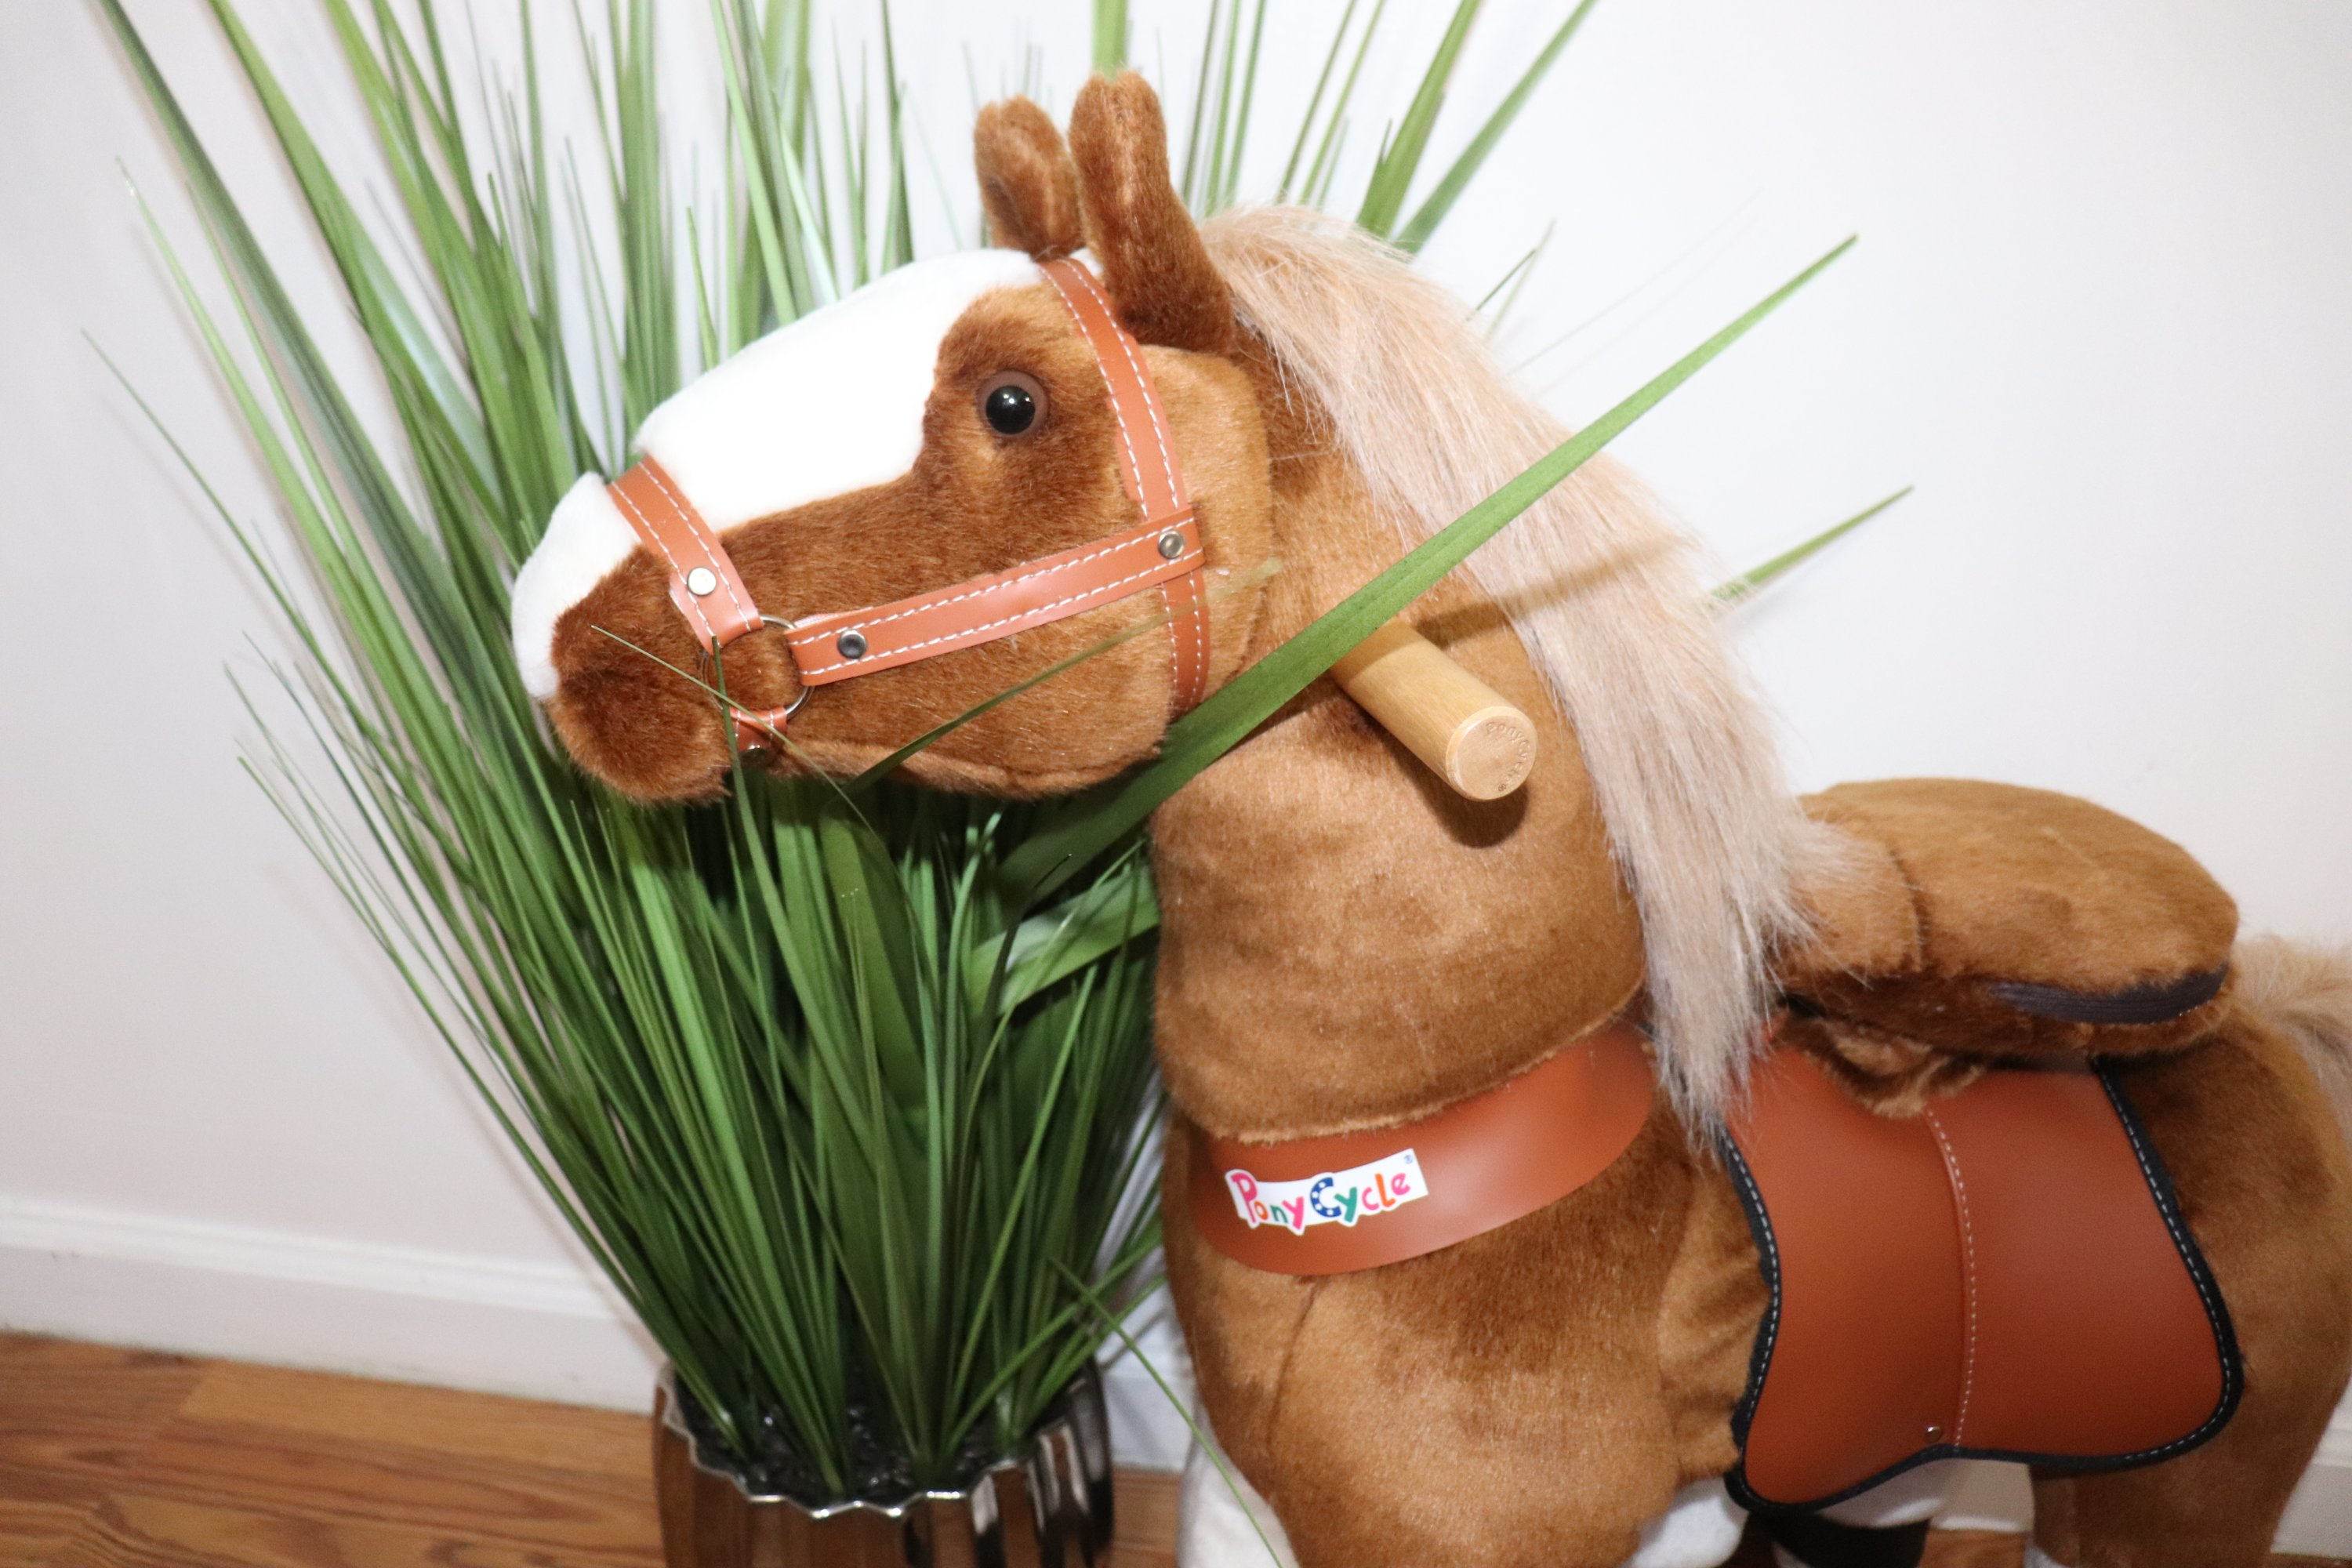 PonyCycle Medium Golden Brown Non-Electric Kid Powered Ride On Toy Horse